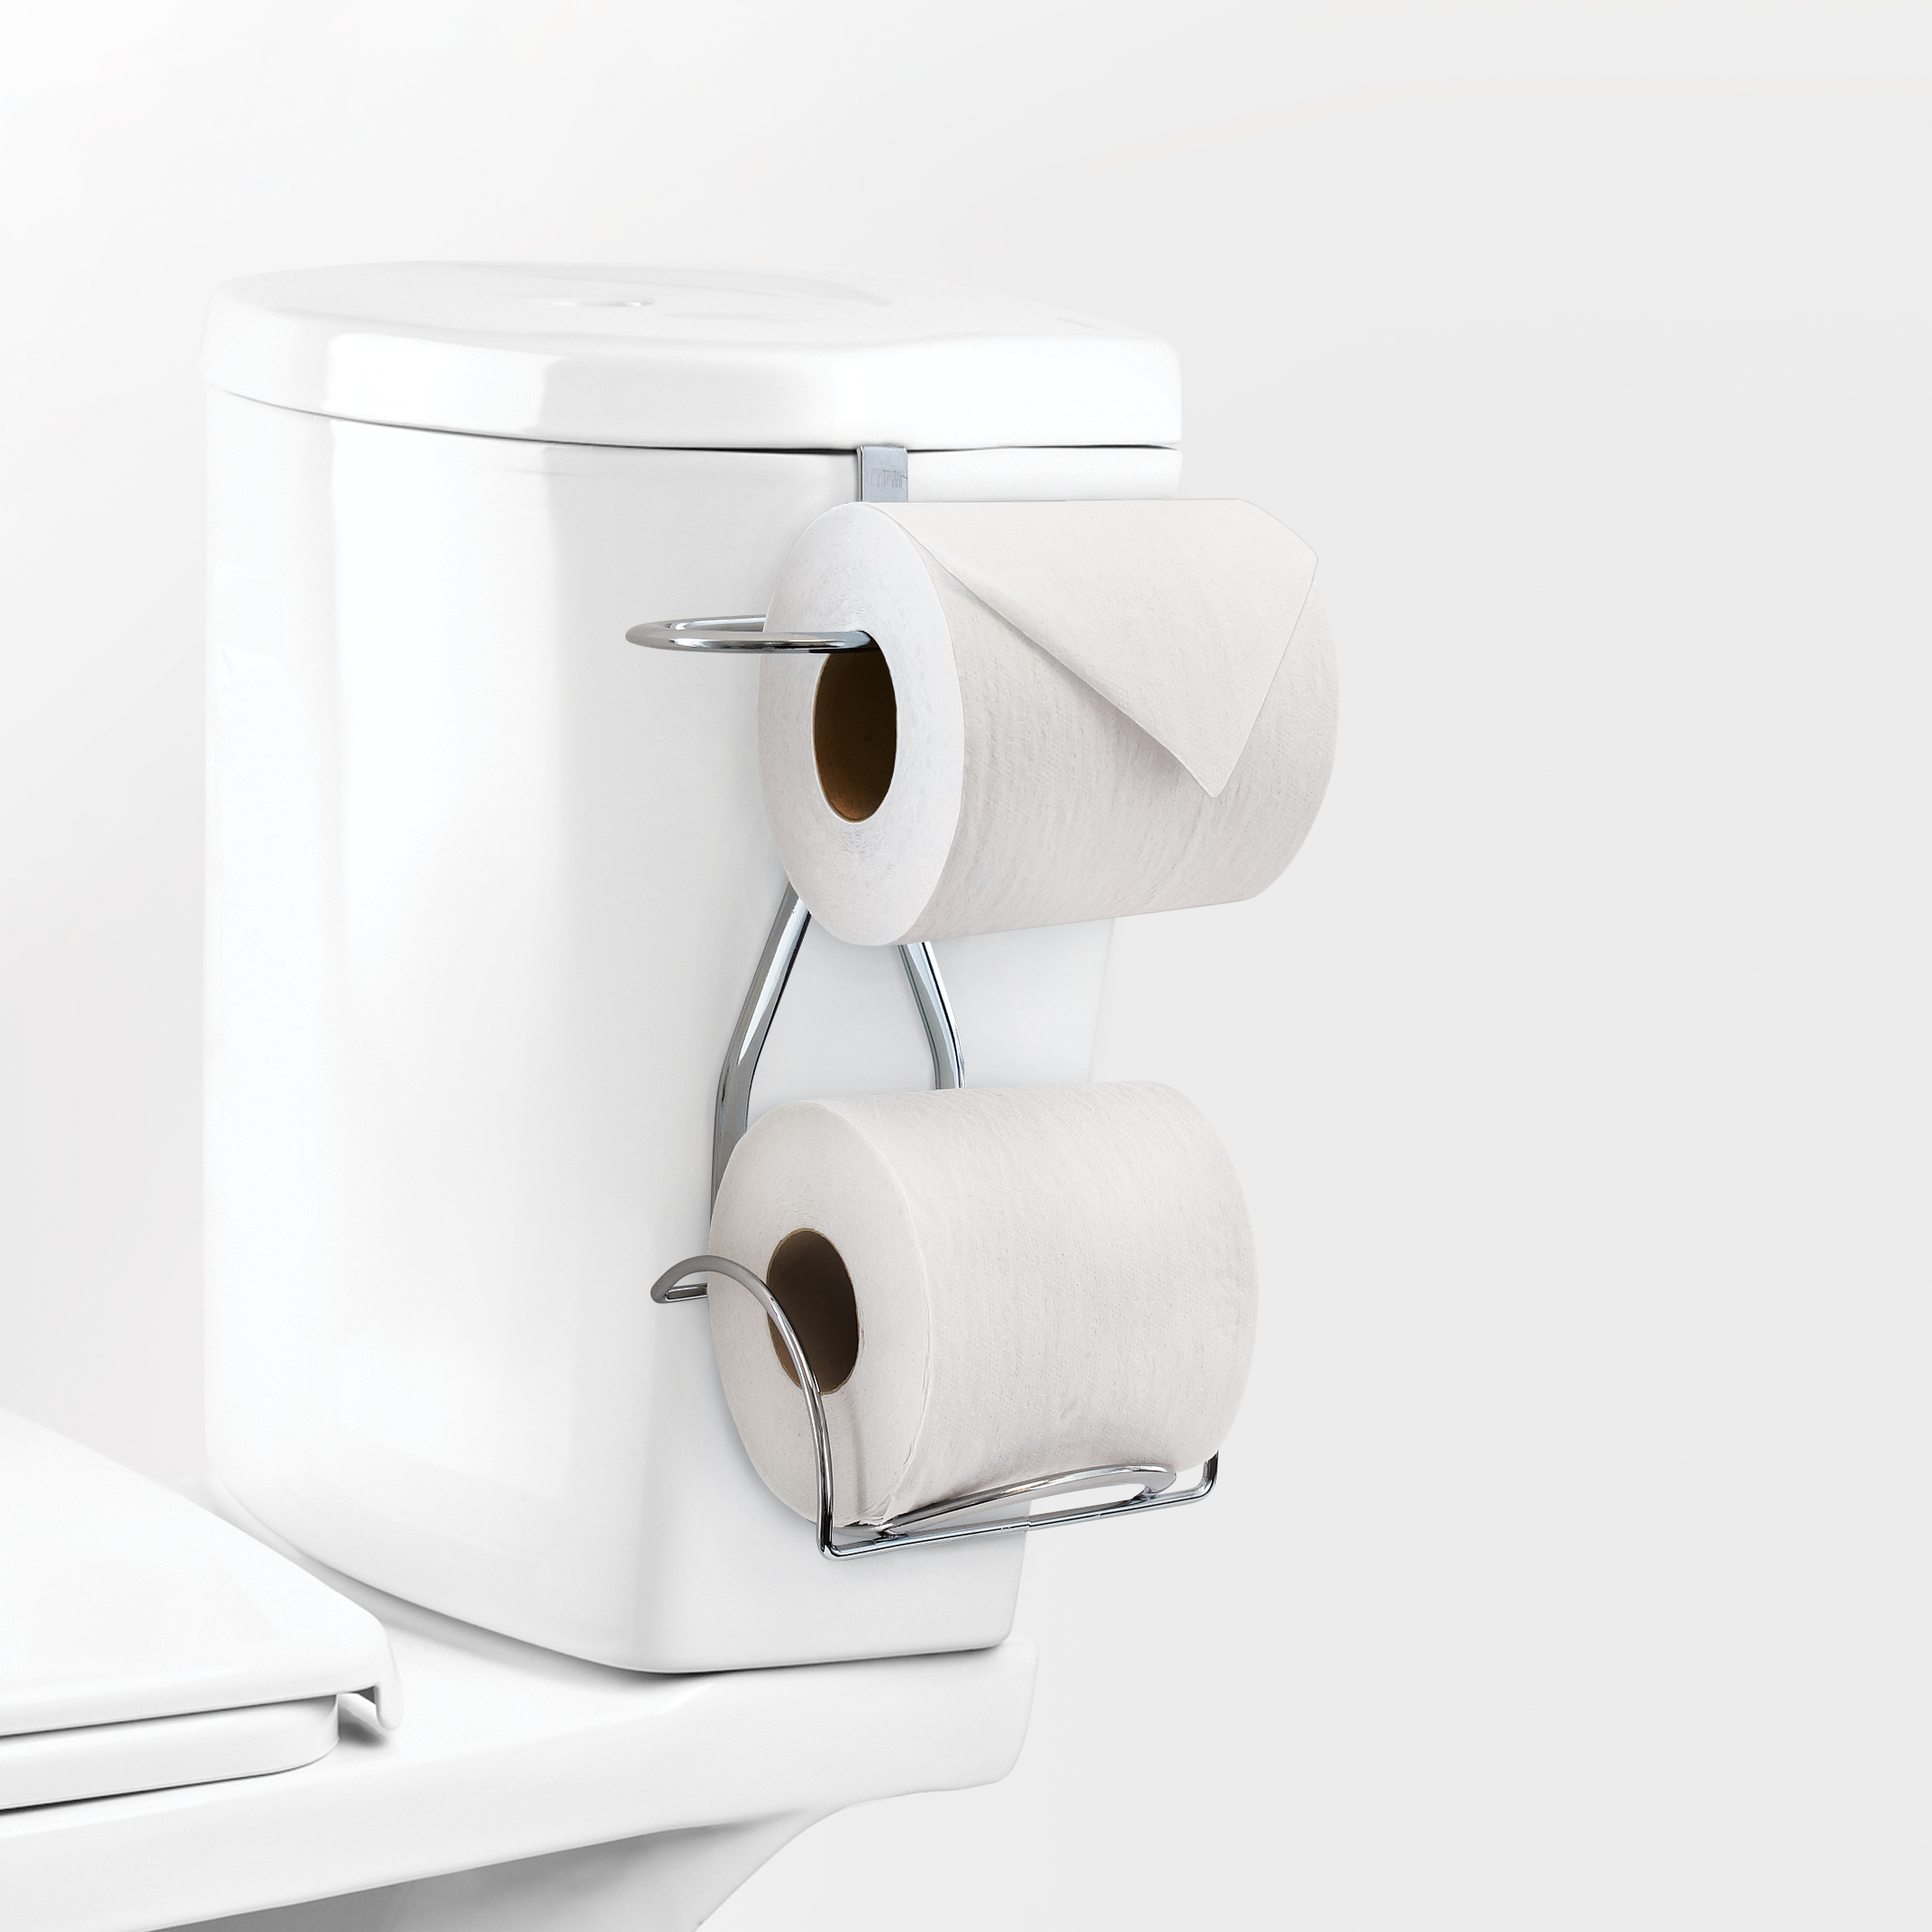 Toilet Paper Reserves - Decorative and essential toilet paper reserves for all types of bathrooms.